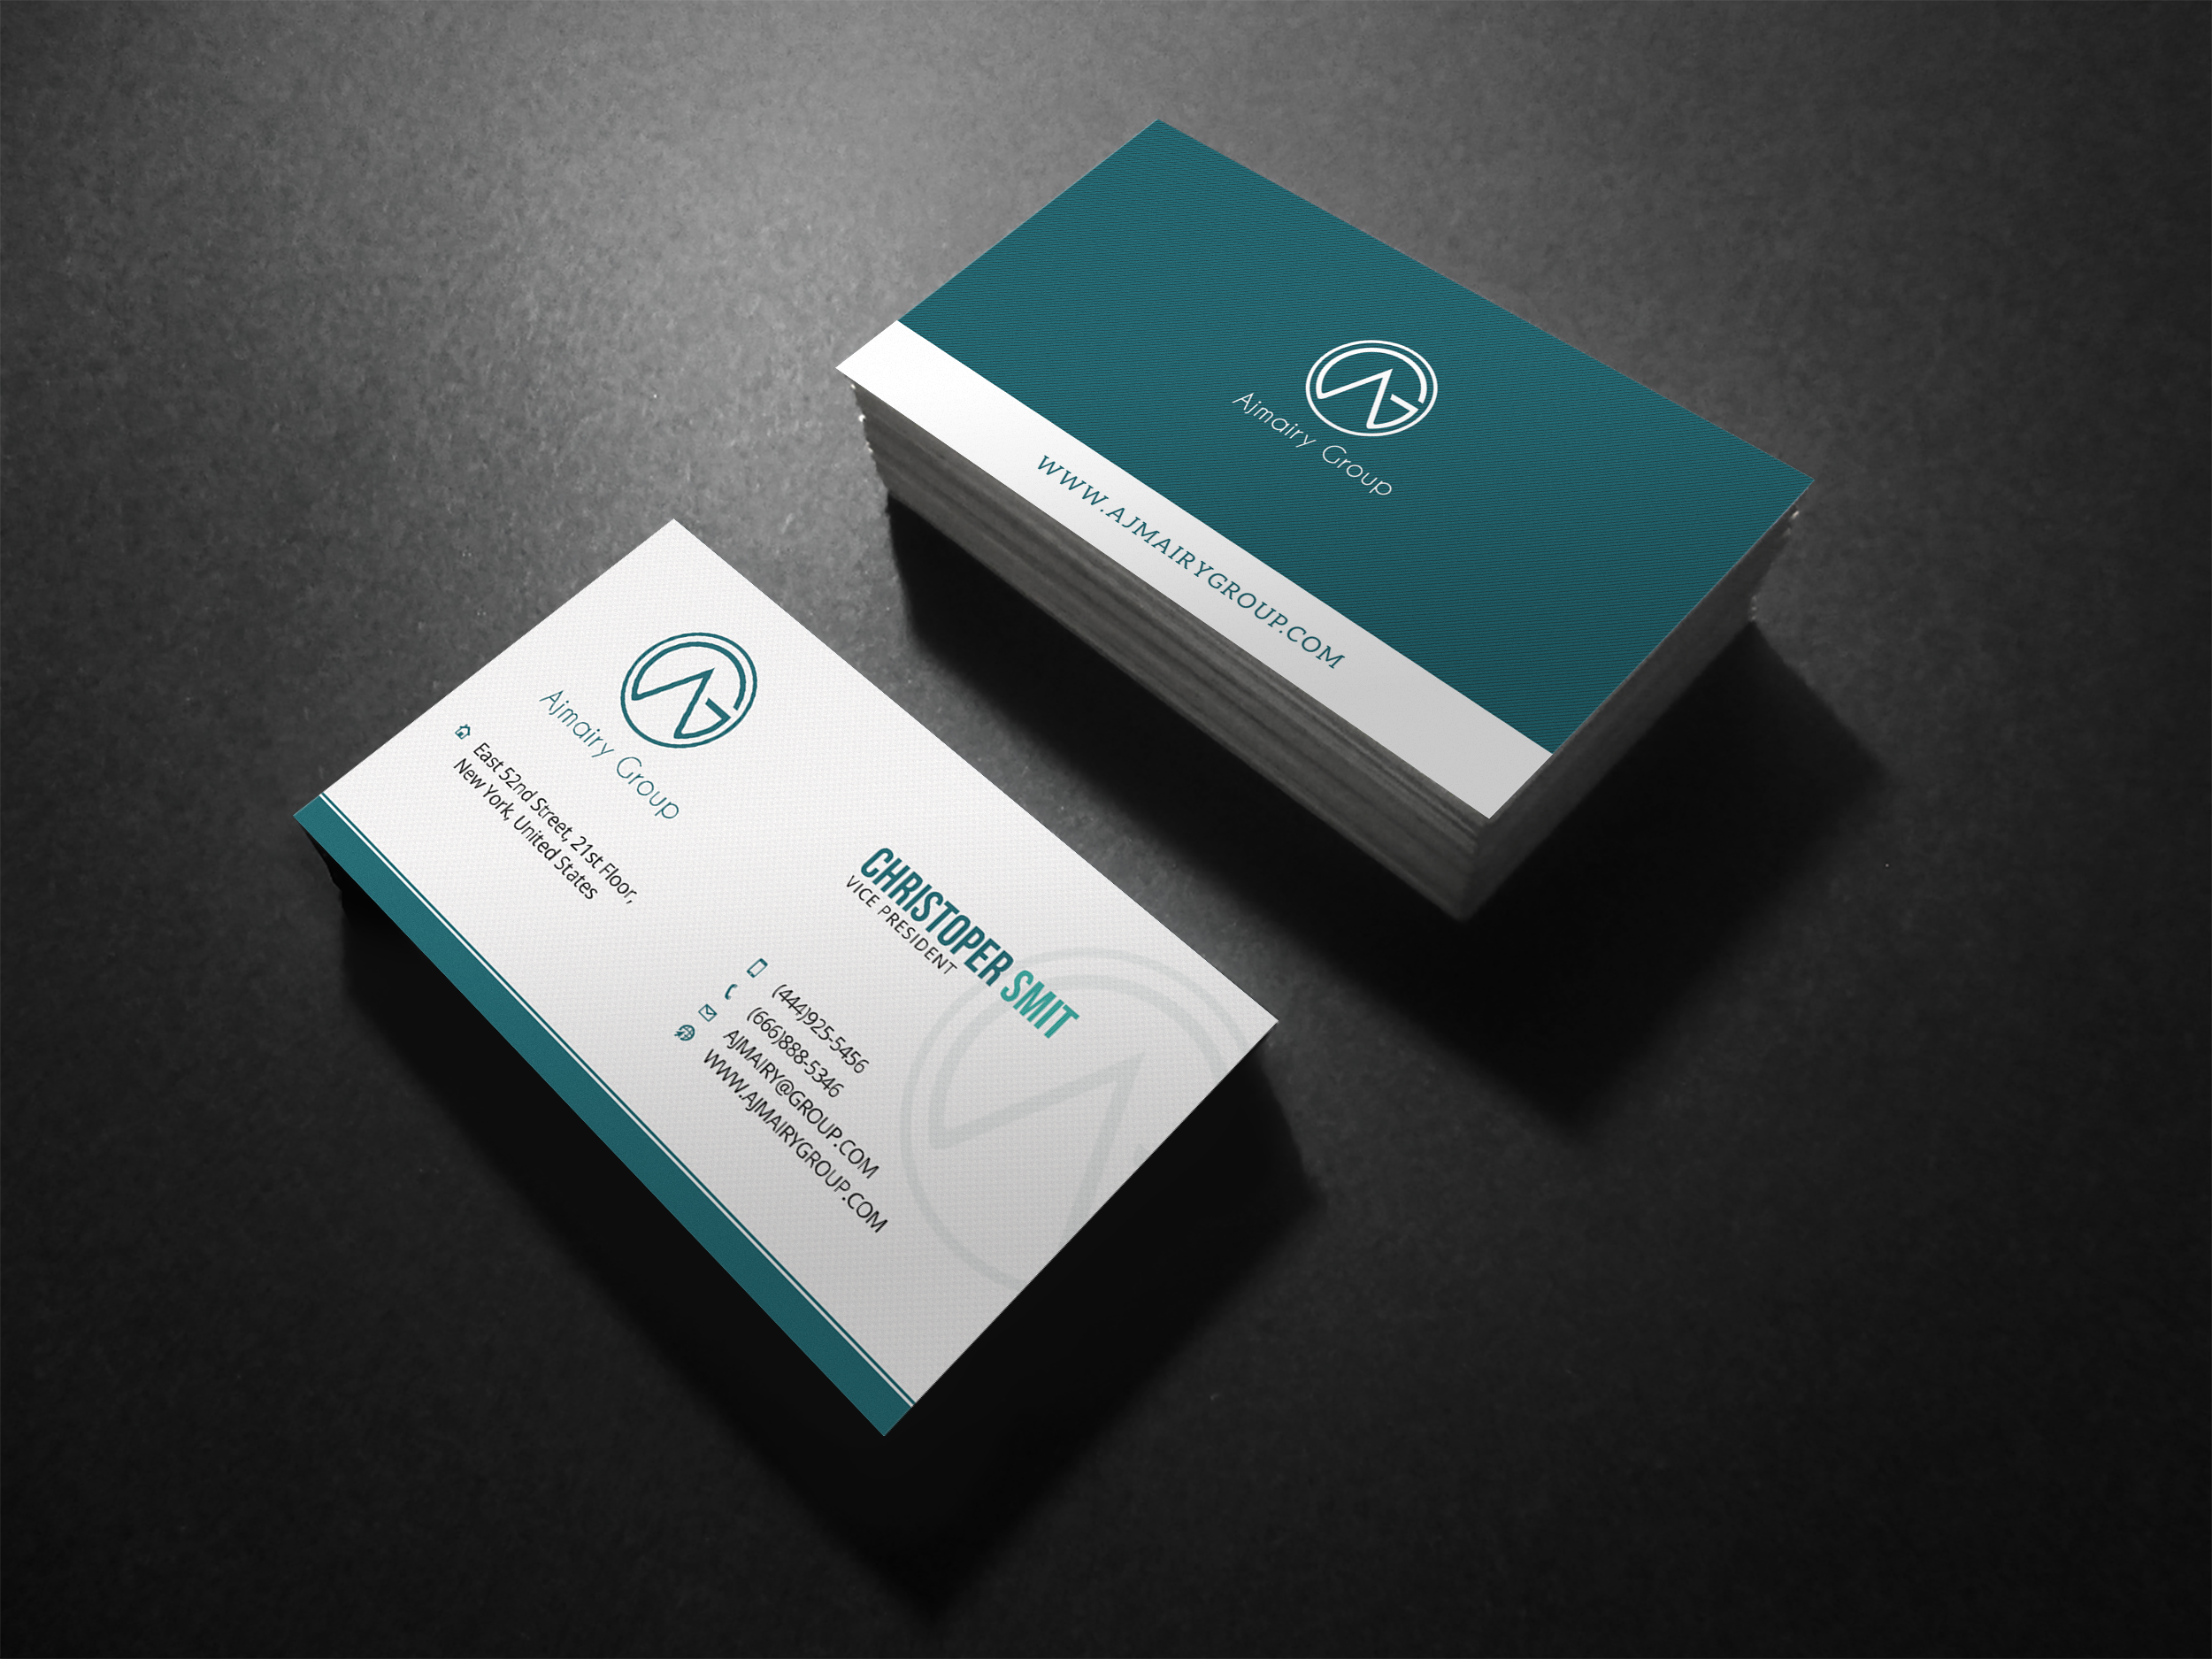 Business Card Design Contests » Artistic Business Card Design for ...